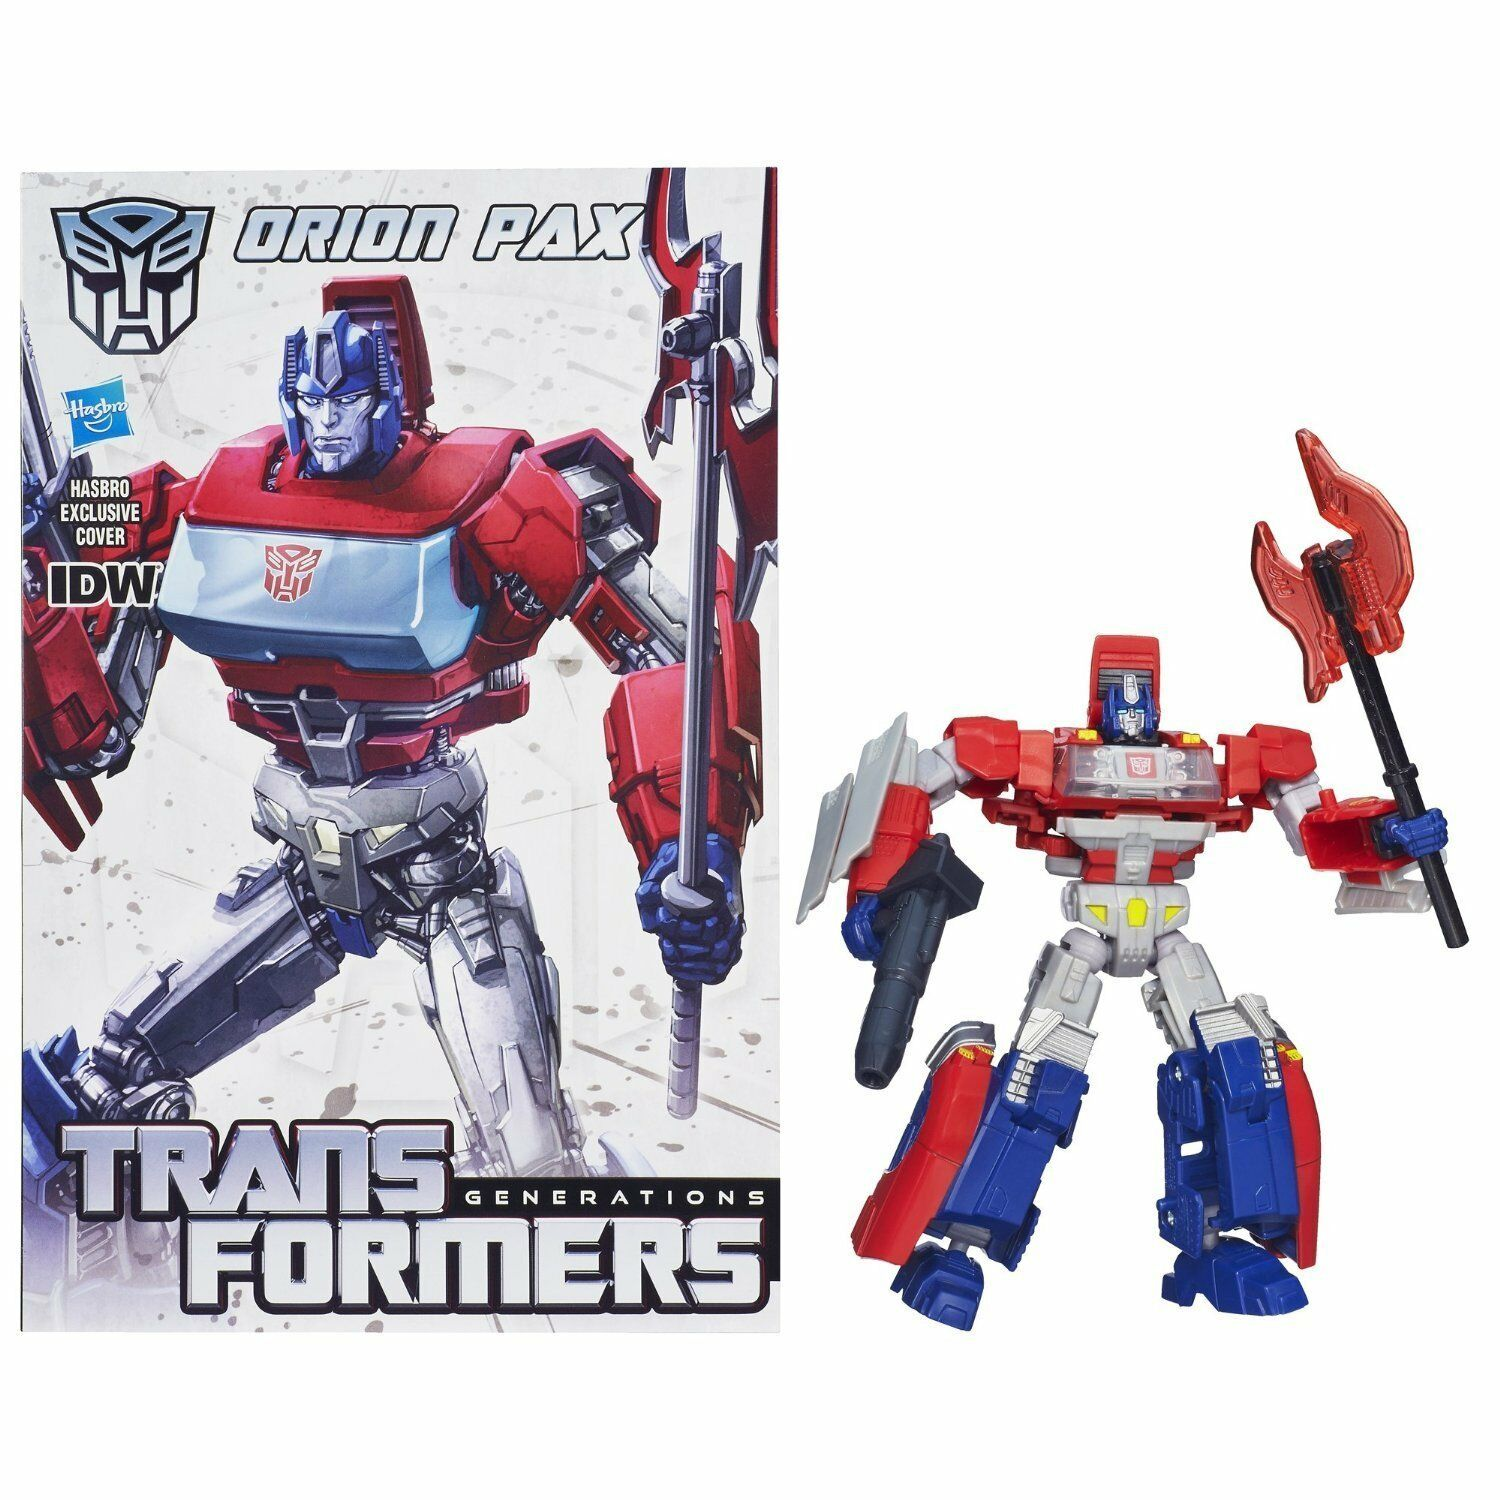 Transformers Deluxe Class ORION PAX Action Figure - Hasbro